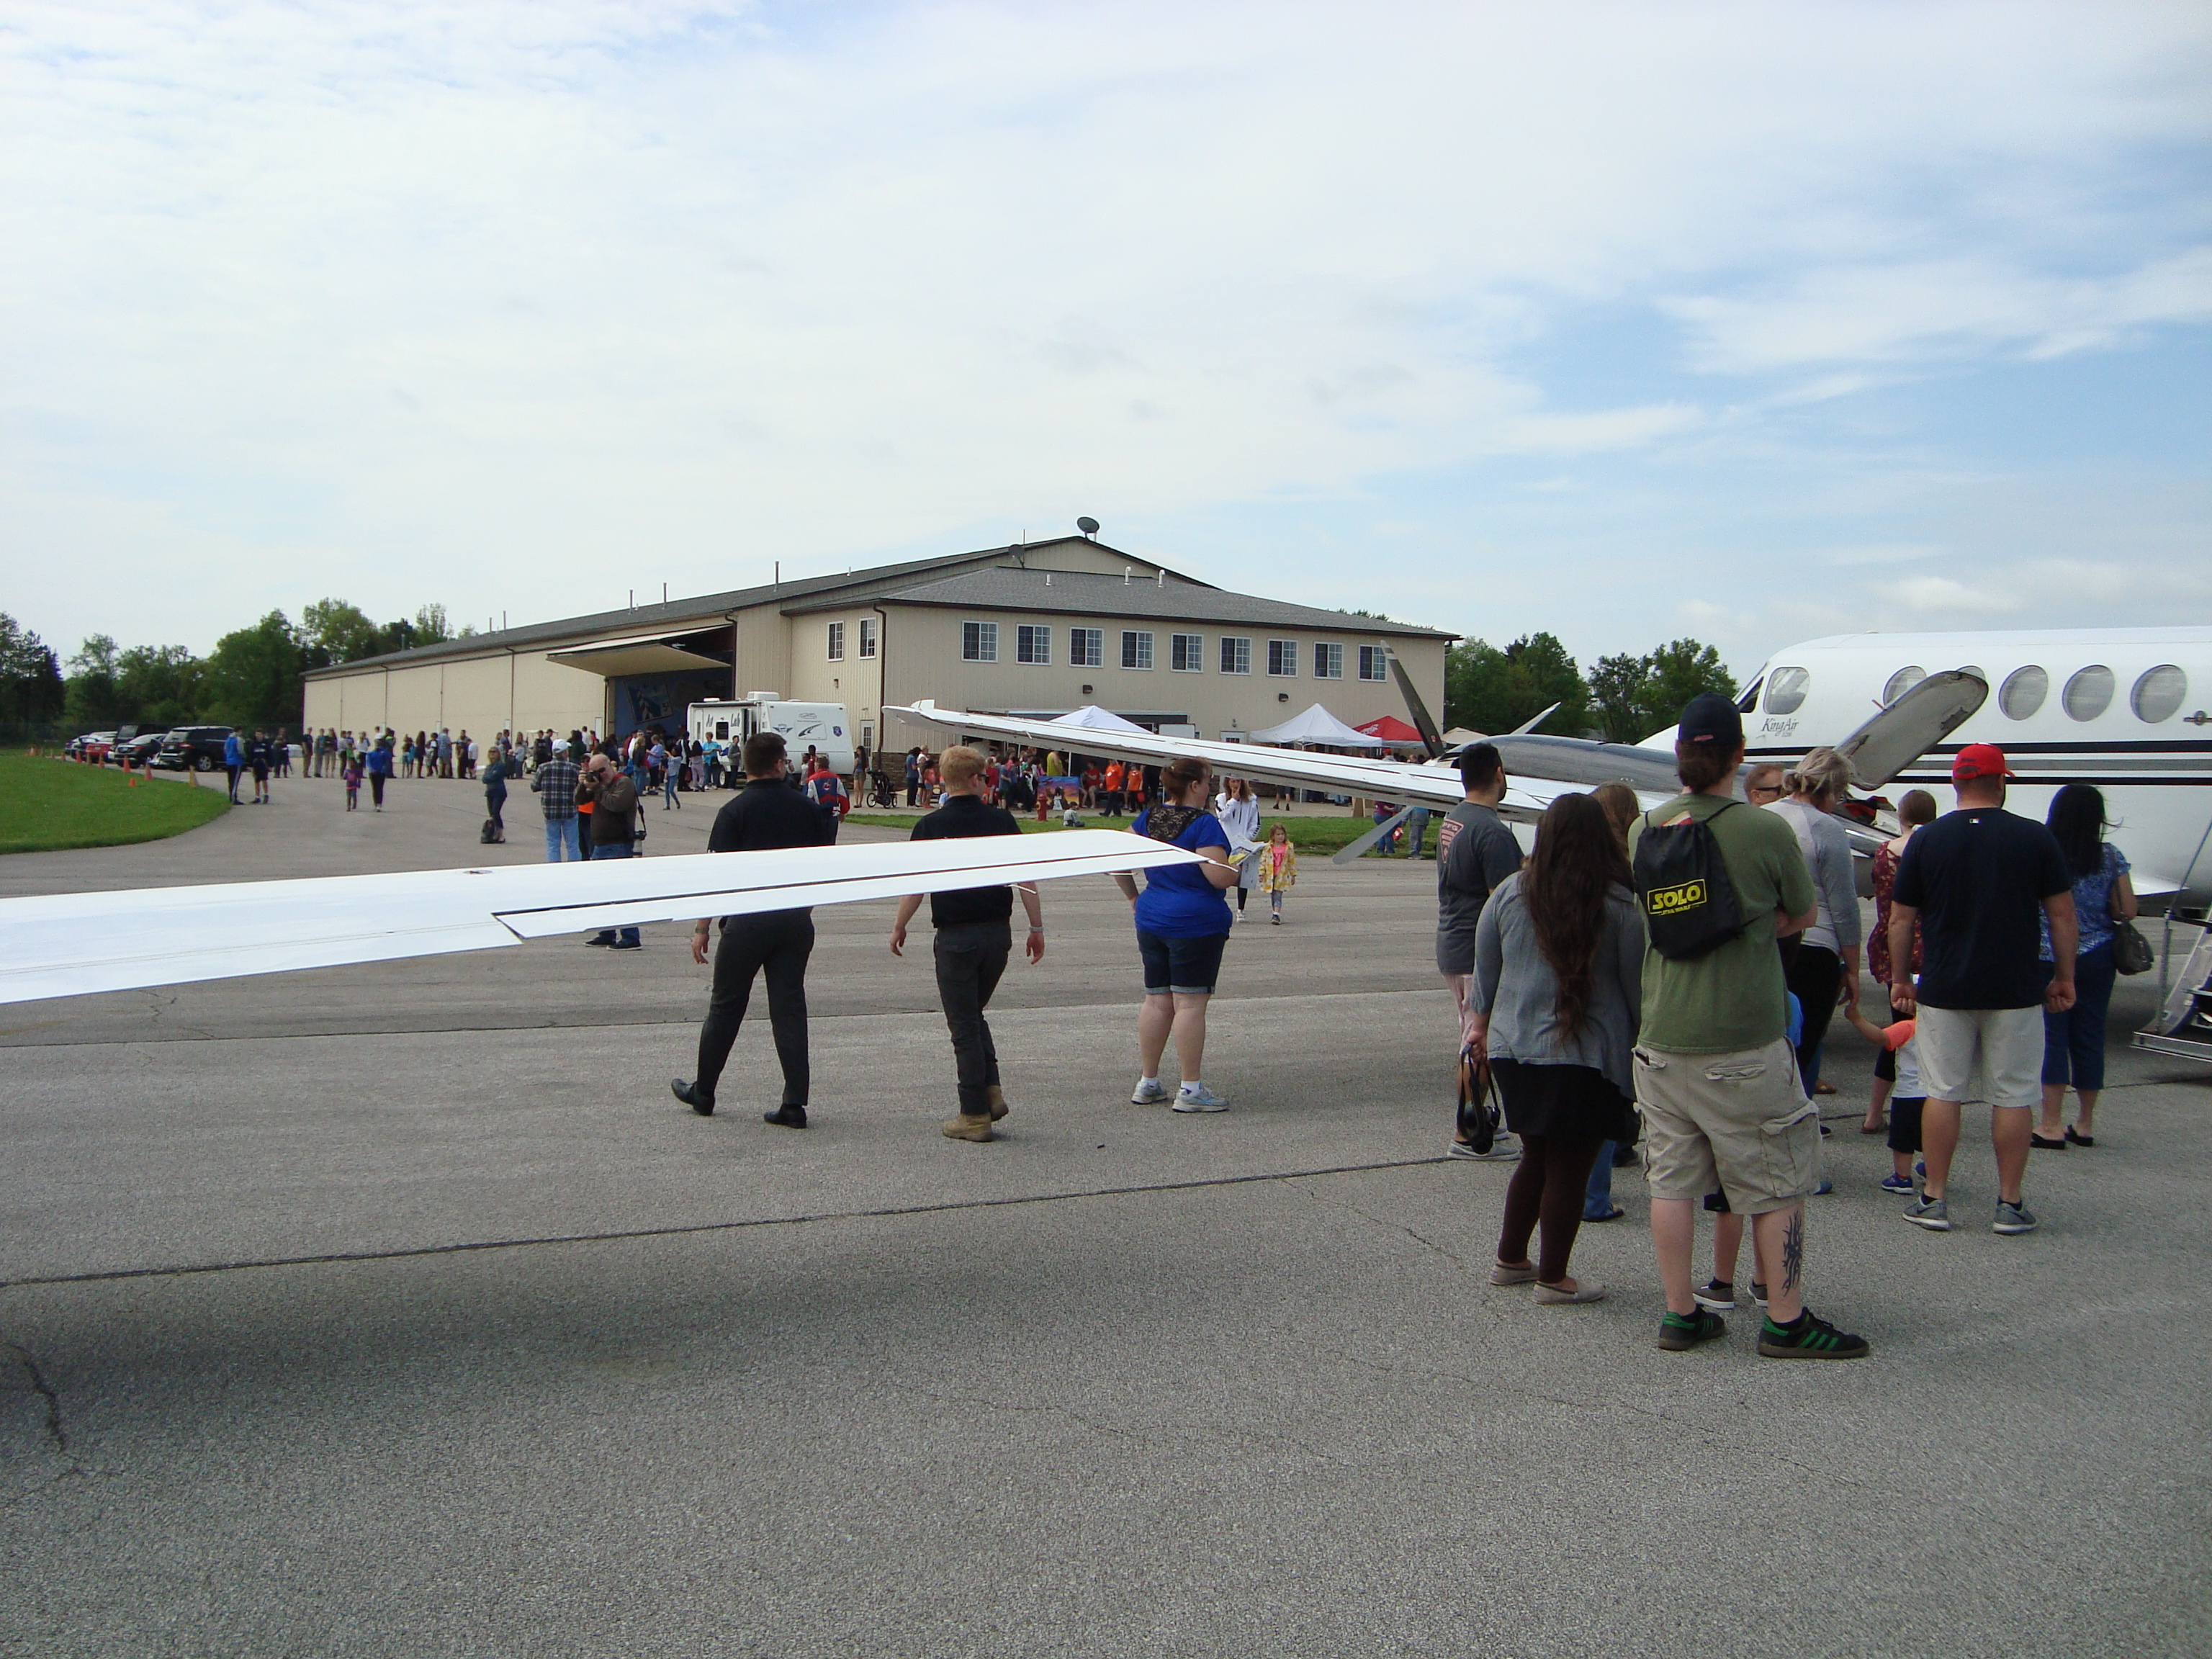 Discover Aviation Day - airport grounds at Lorain County Regional Airport